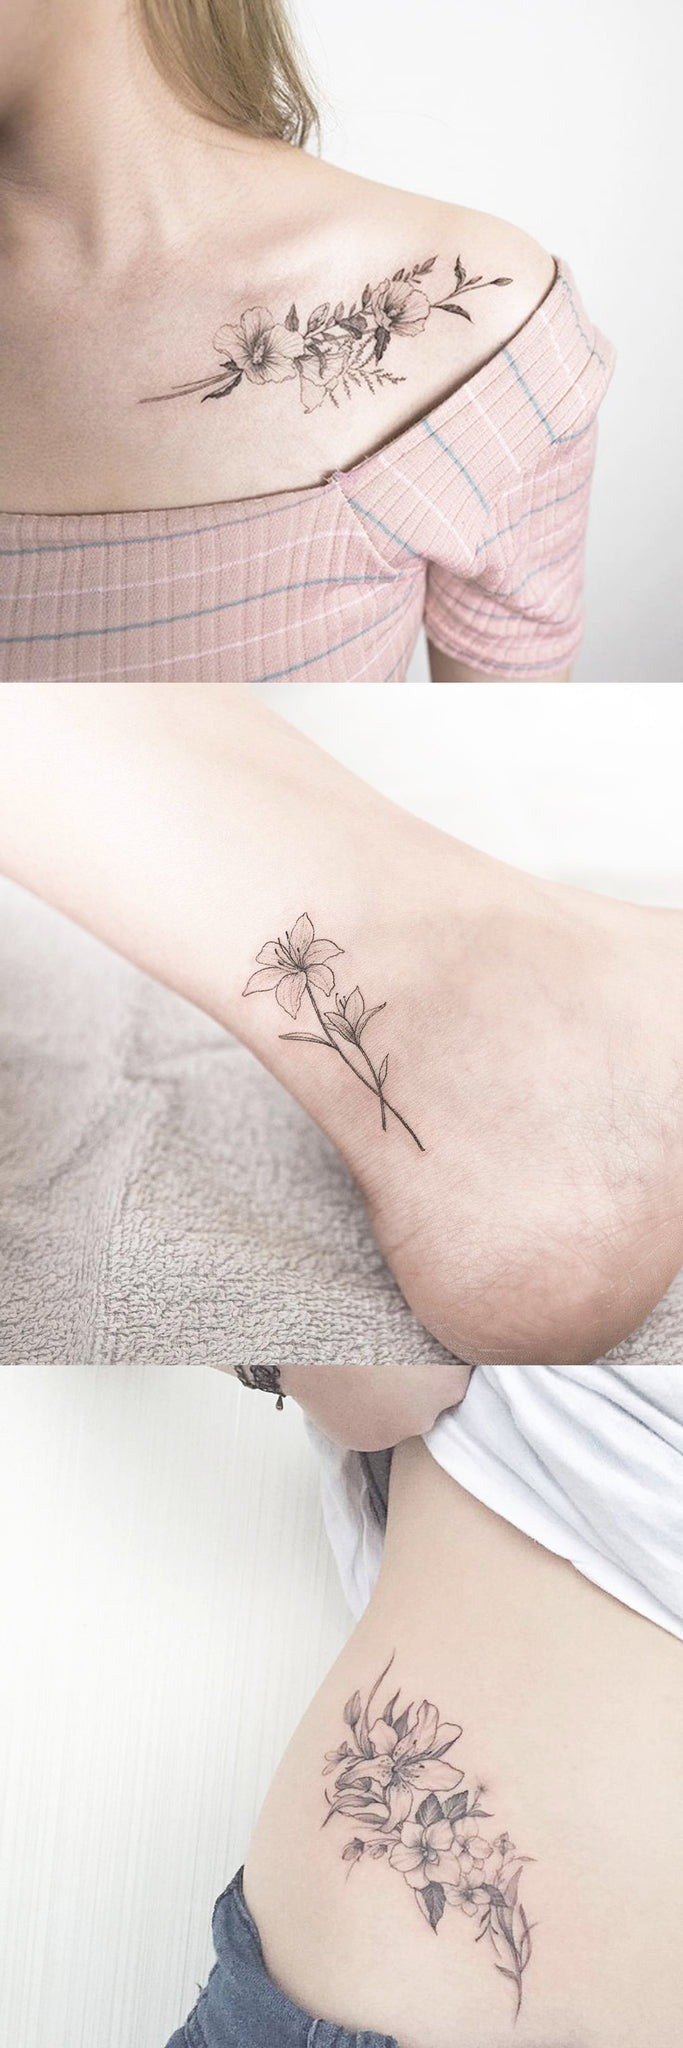 Delicate Sketched Flower Shoulder Tattoo Ideas - Wild Realistic Floral Ankle Tatt - MyBodiArt.com